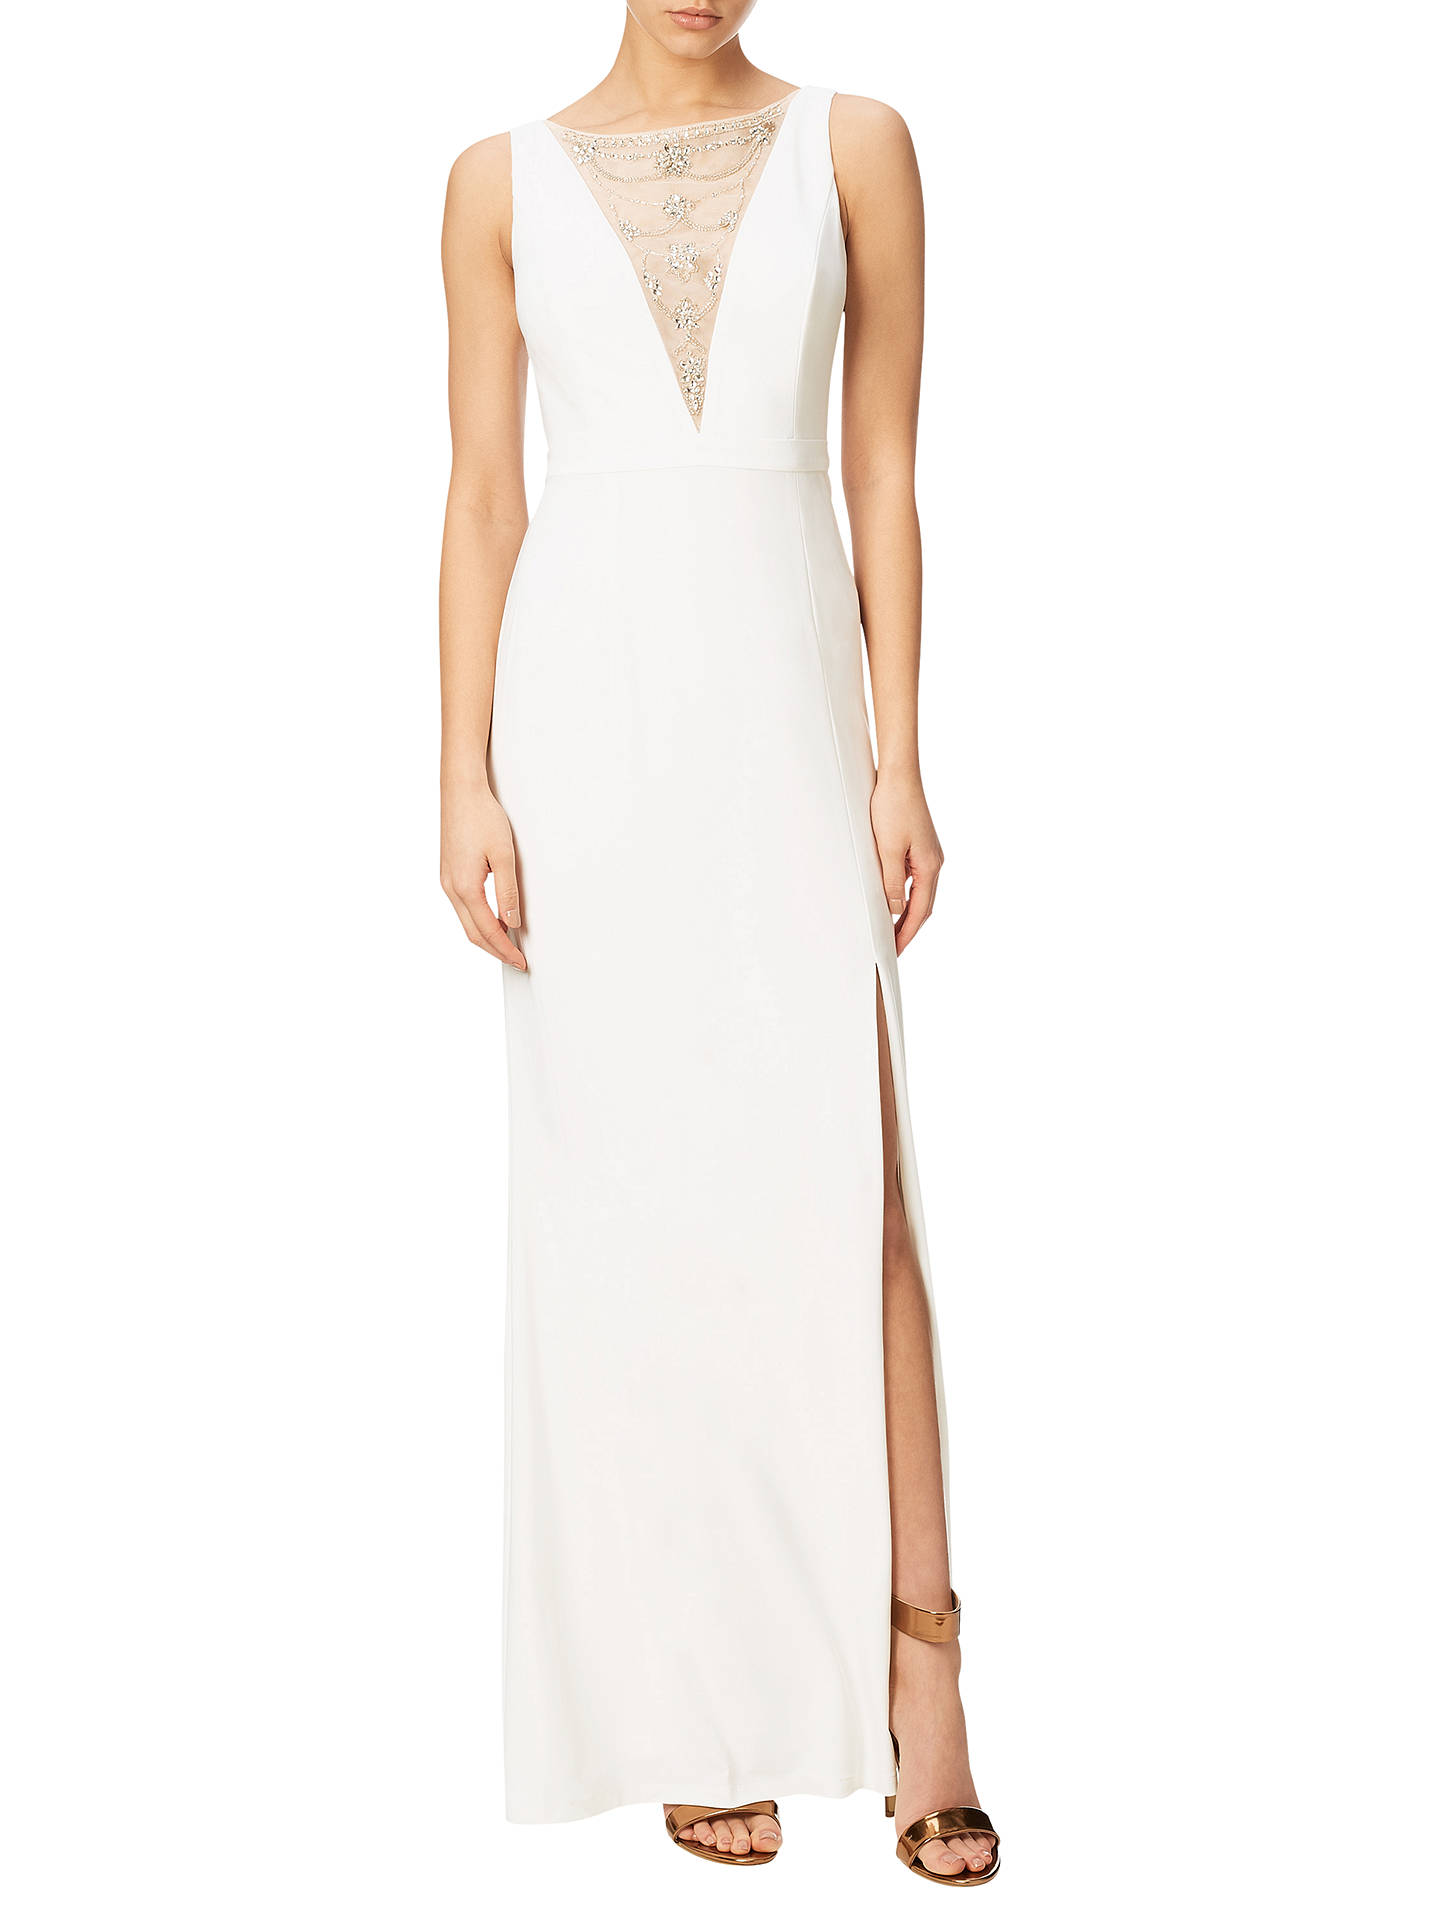 BuyAdrianna Papell Jersey Halter Neck Gown, Ivory, 8 Online at johnlewis.com